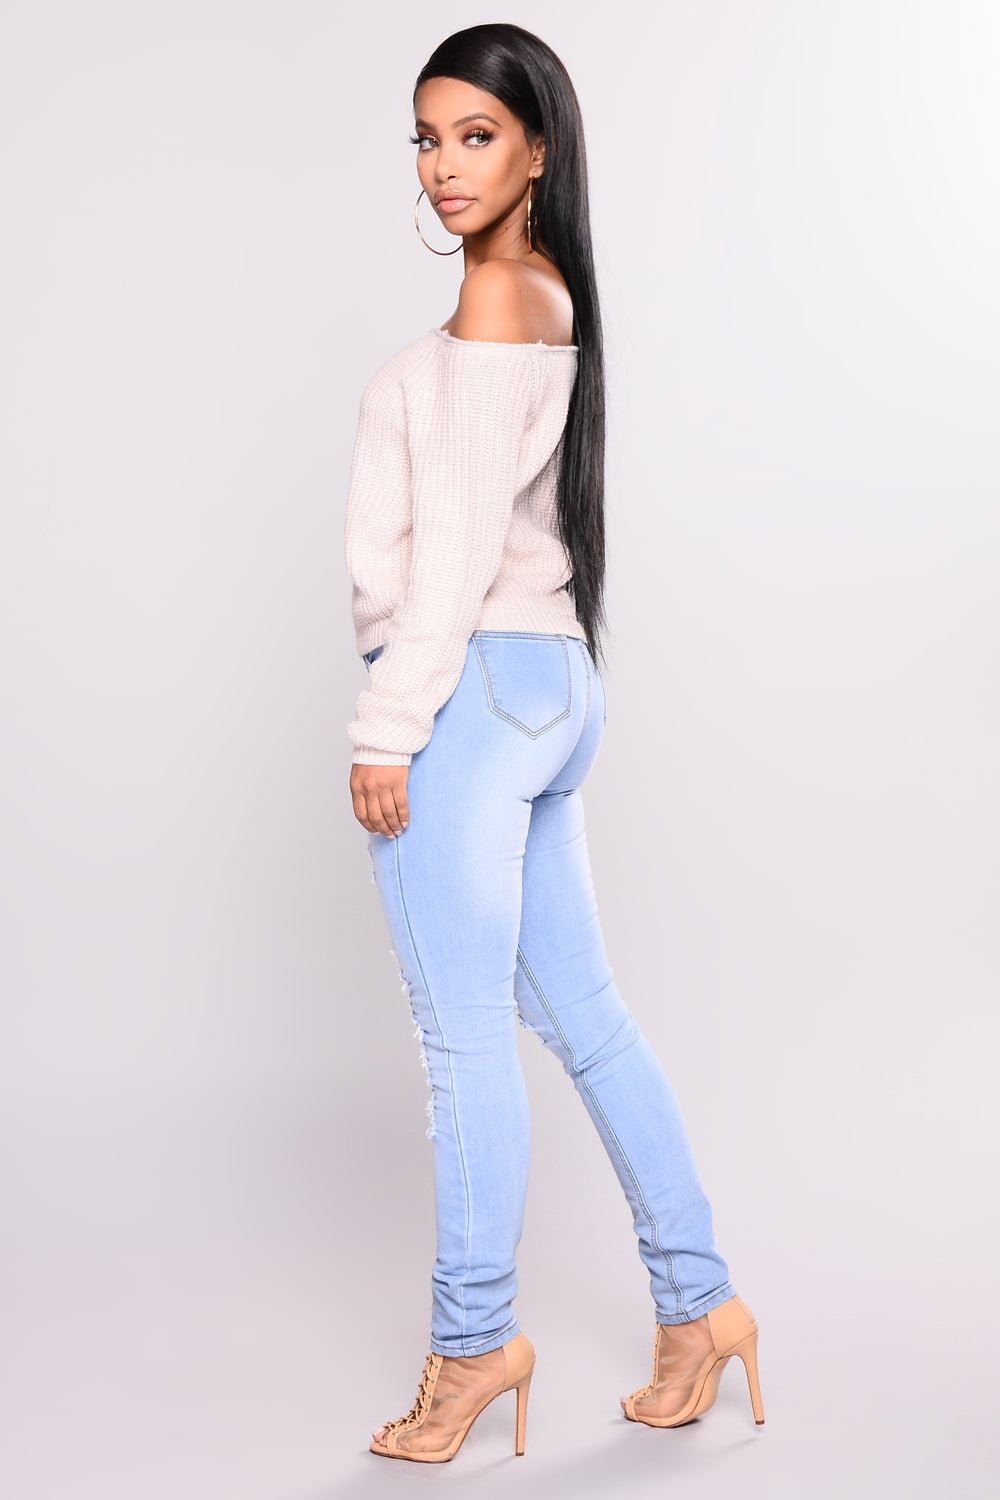 Soft Shades Distressed Jeans - Light Wash